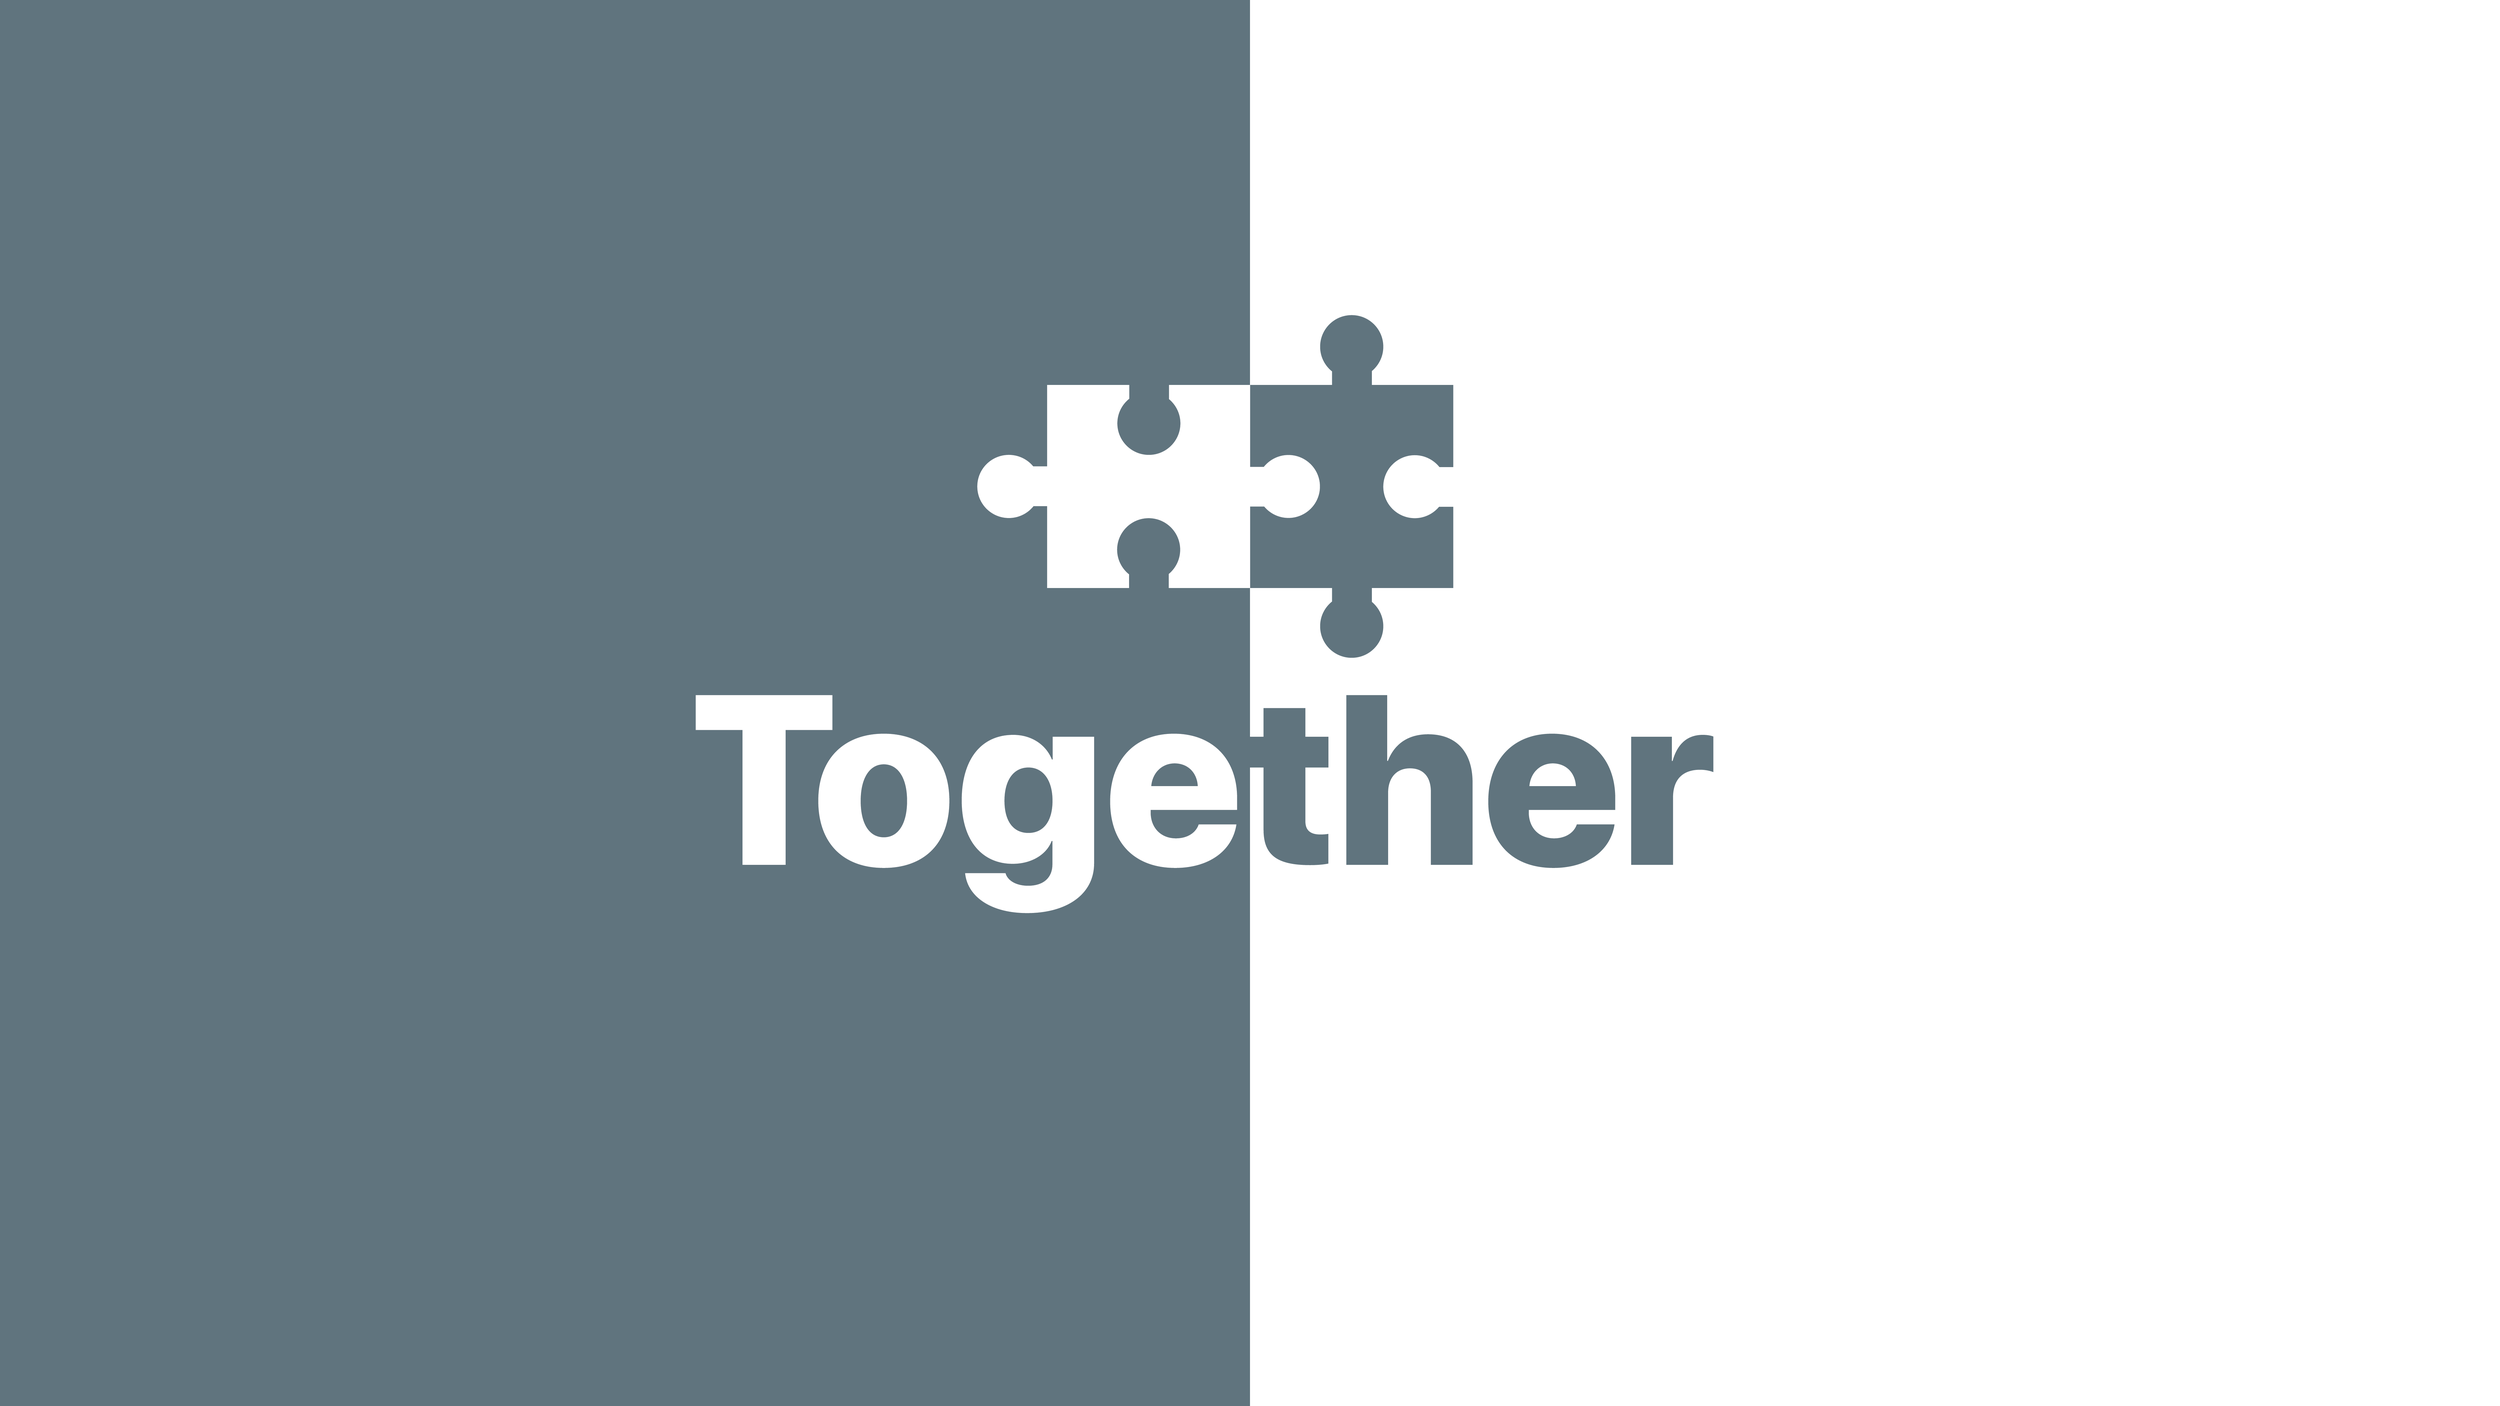 Together - HD.png